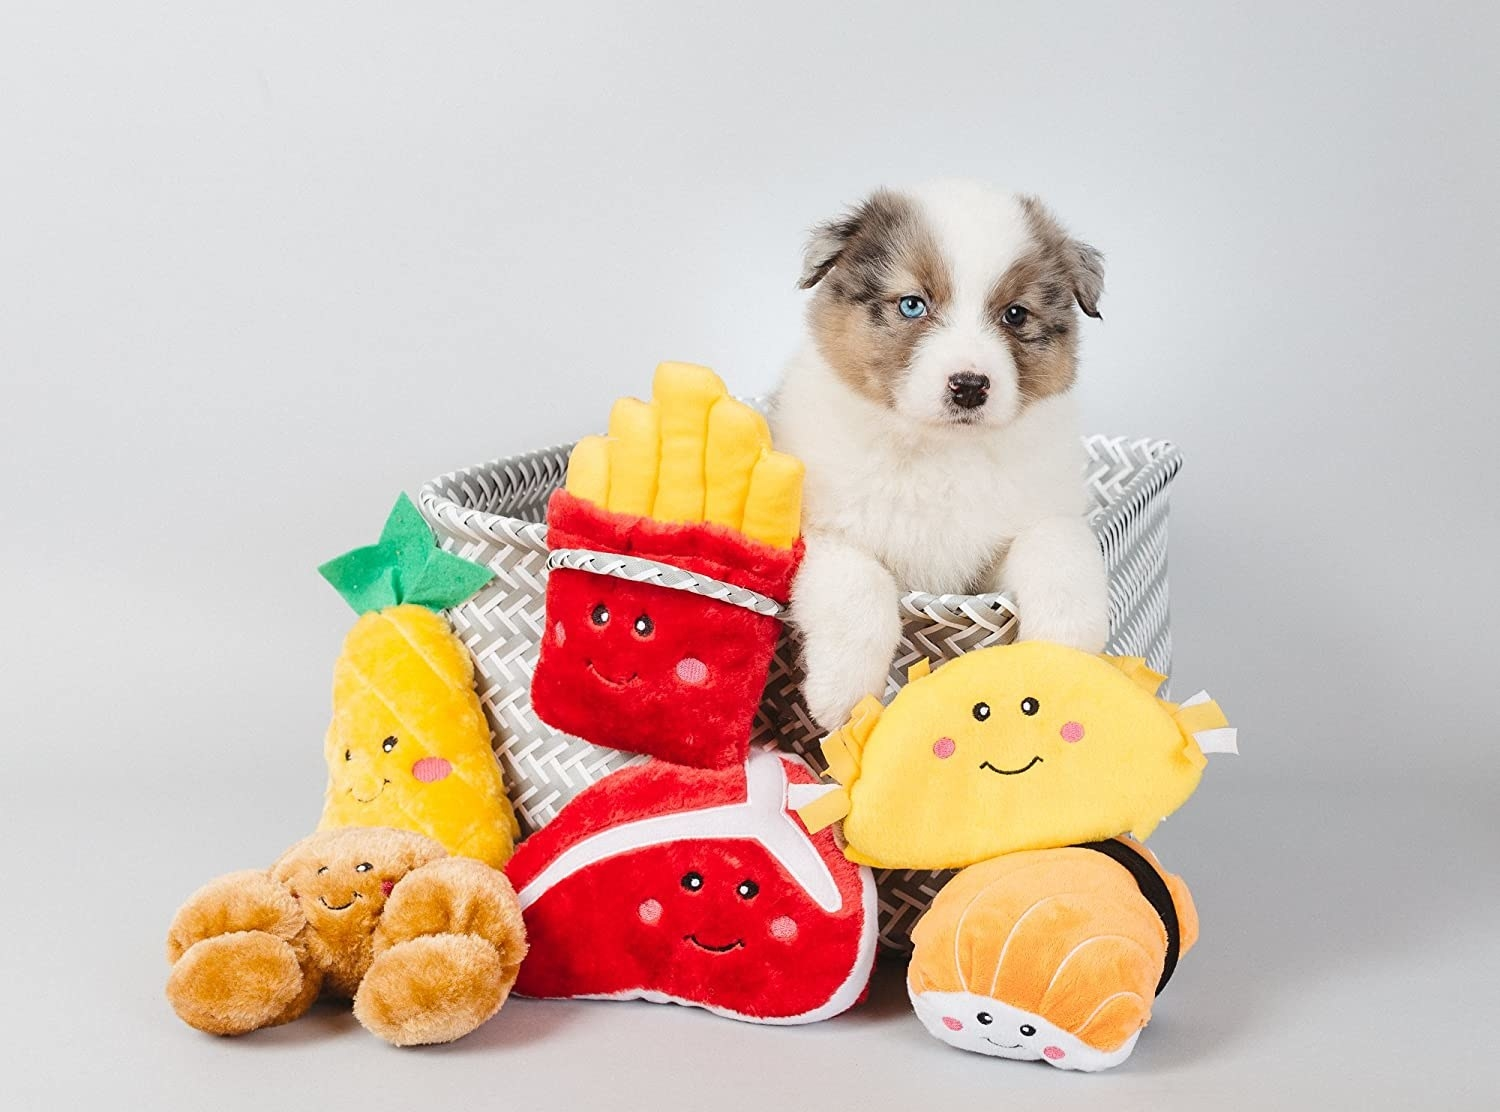 puppy with various food theme plush toys